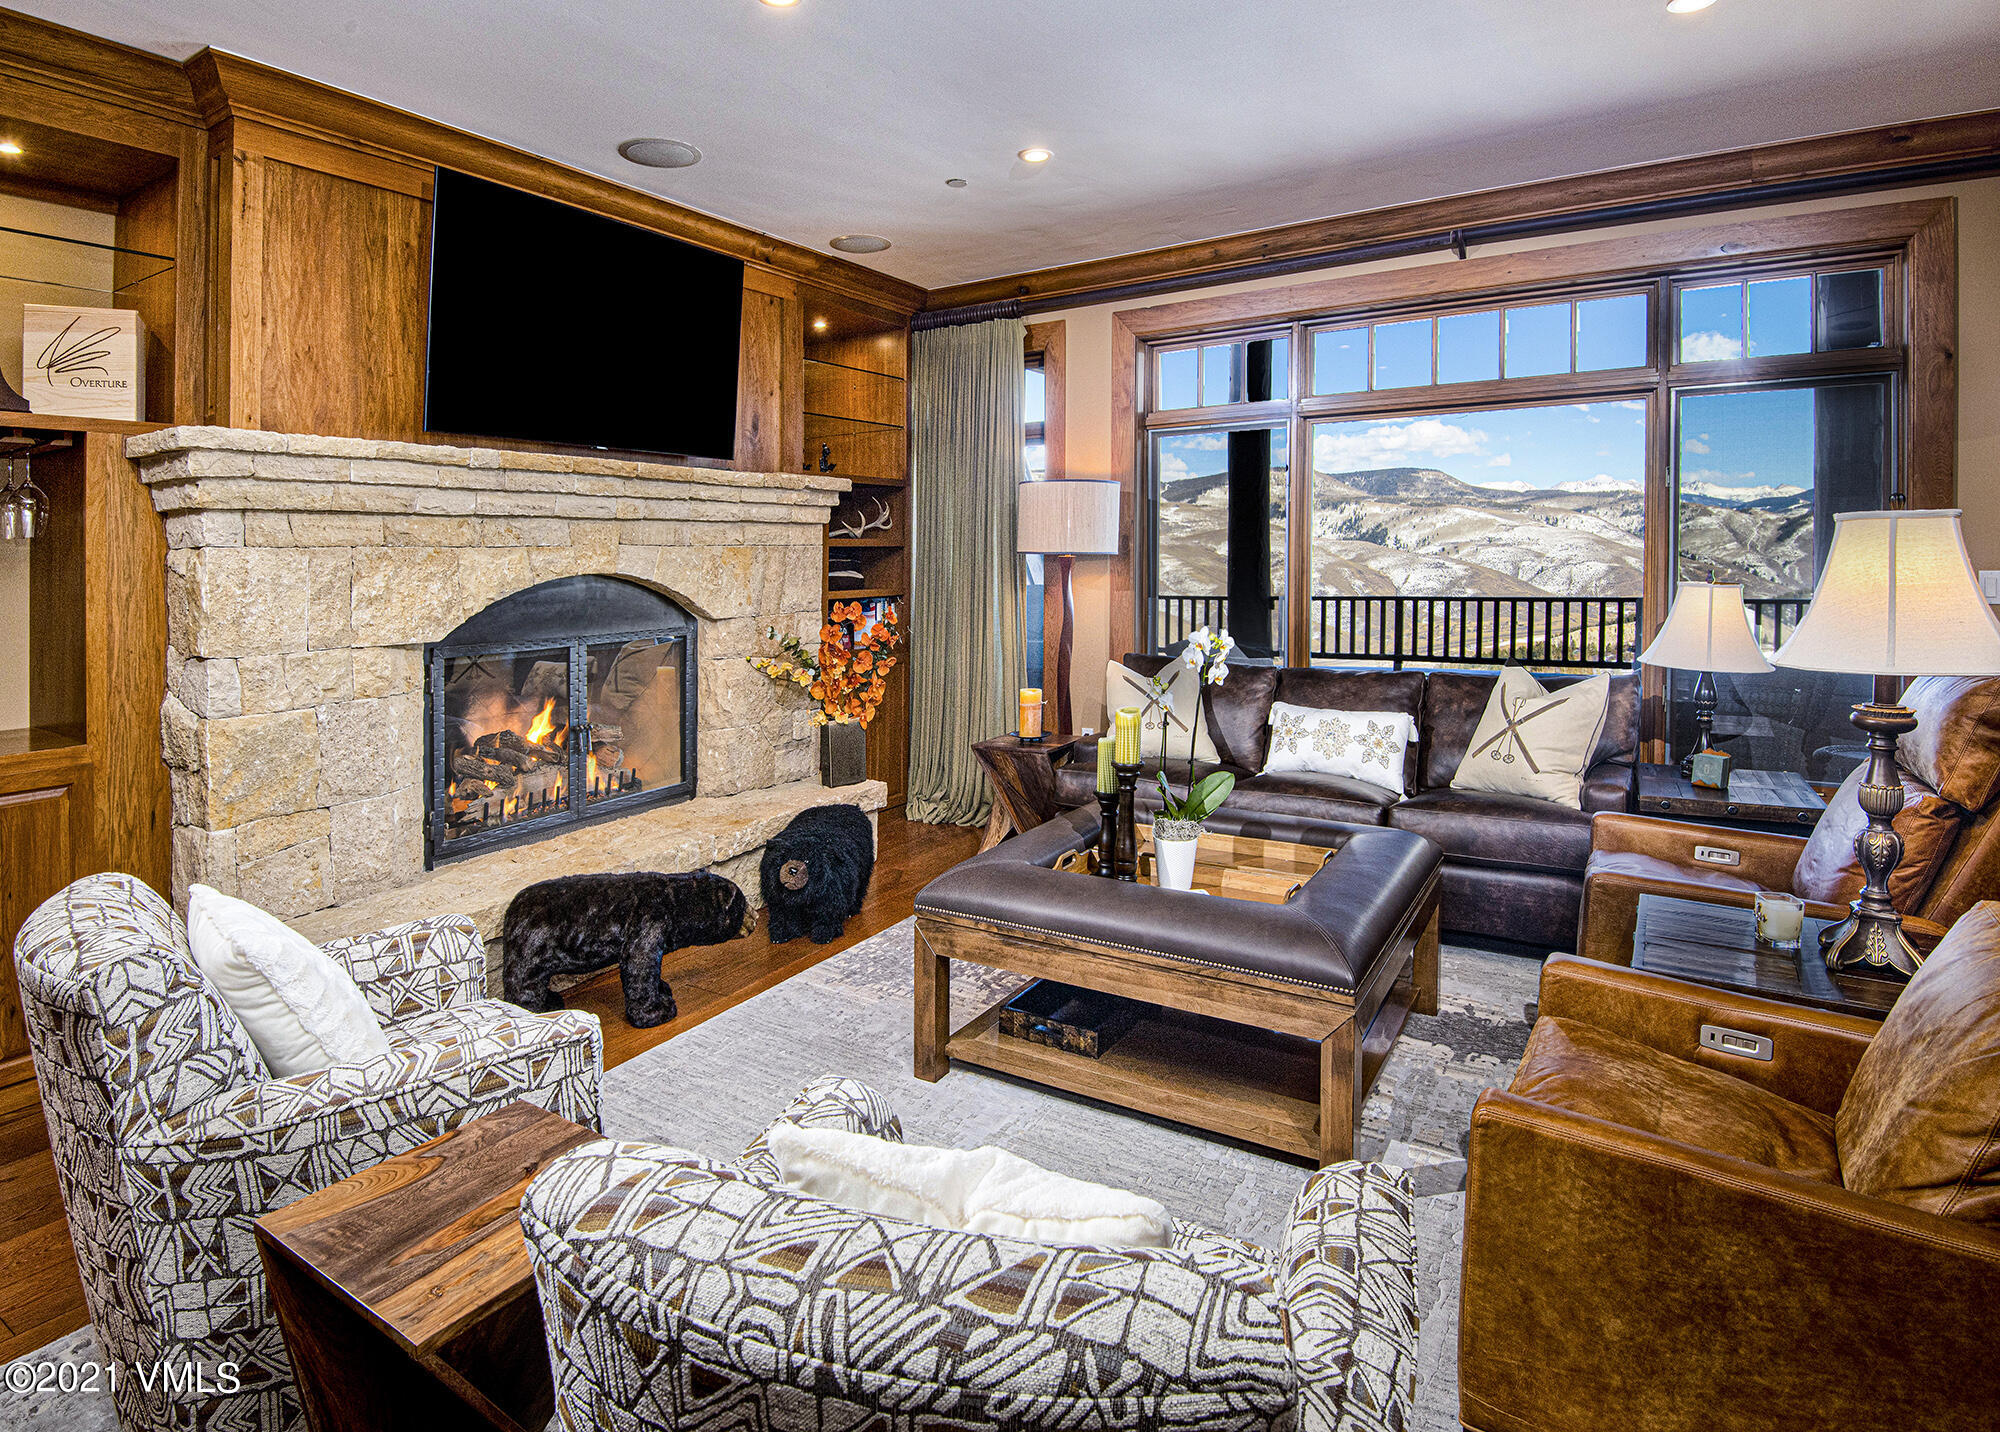 Exclusive offering in Bachelor Gulch boasting majestic views of Vail Valley's famed mountain peaks, the Gore Range and the surrounding ski slopes. Horizon Pass Lodge 410 exudes a feeling of comfort and elegance with a large great room featuring a handsome stone fireplace with custom cabinets flanking each side and warm toned, wide plank wood floors. The living space seamlessly flows to the open style kitchen where beautiful Quartzite countertops softly shimmer and are complemented by marble subway tile backsplash, high end appliances, and an enviable walk in pantry with great storage, shelving and a wine refrigerator. A large private deck is sure to delight whether you are enjoying your morning coffee as you watch the sunrise or stargazing at night. Both guest bedrooms feature en-suite baths and pull out sleeper sofas. The den offers an extra sleeping space with bunks and sleeper sofa. Horizon Pass Lodge has a perfect ski-in ski-out experience, fitness room, ski lockers, air conditioning and outdoor pool and hot tubs.